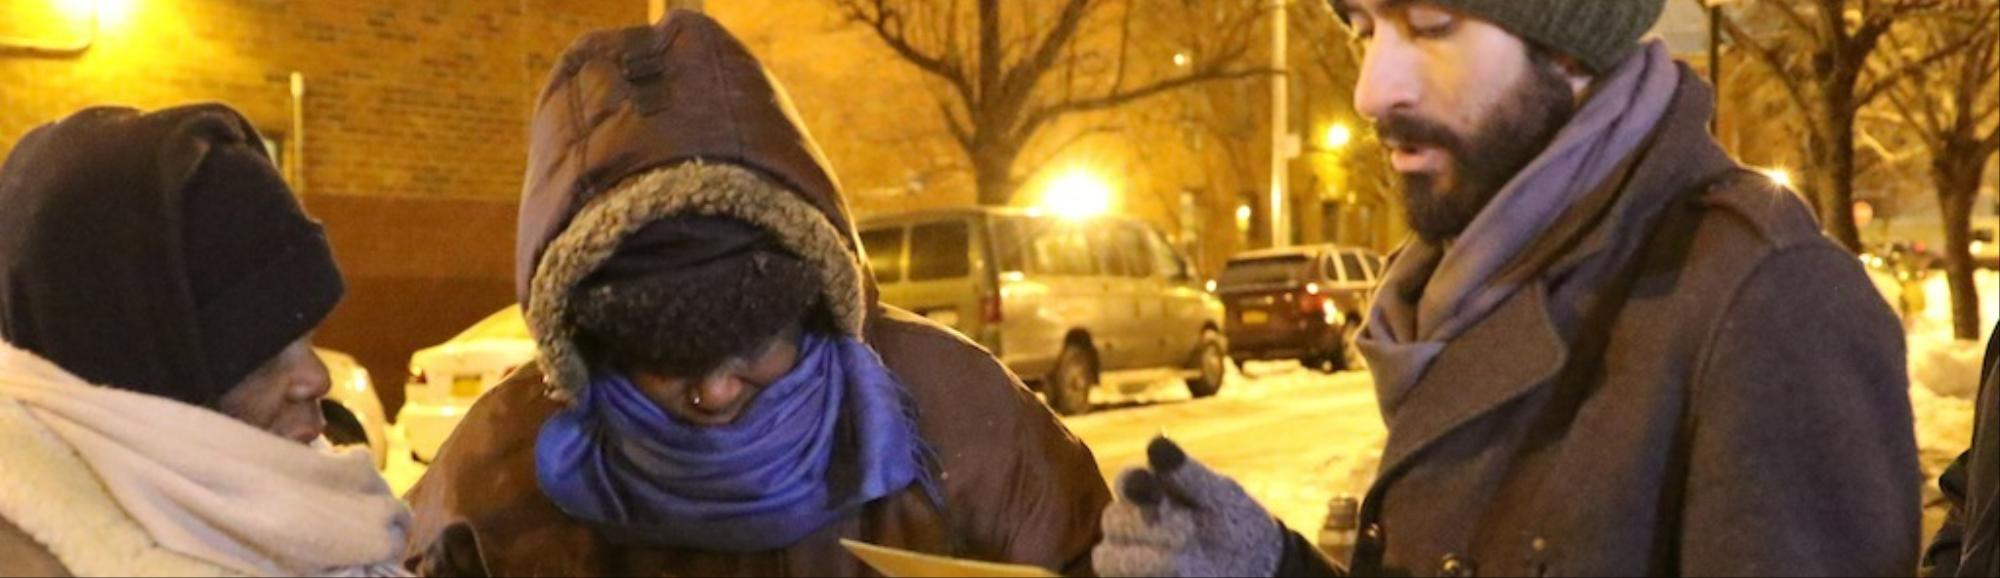 New Yorkers Hit the Streets Looking to Bring HOPE to the City's Homeless